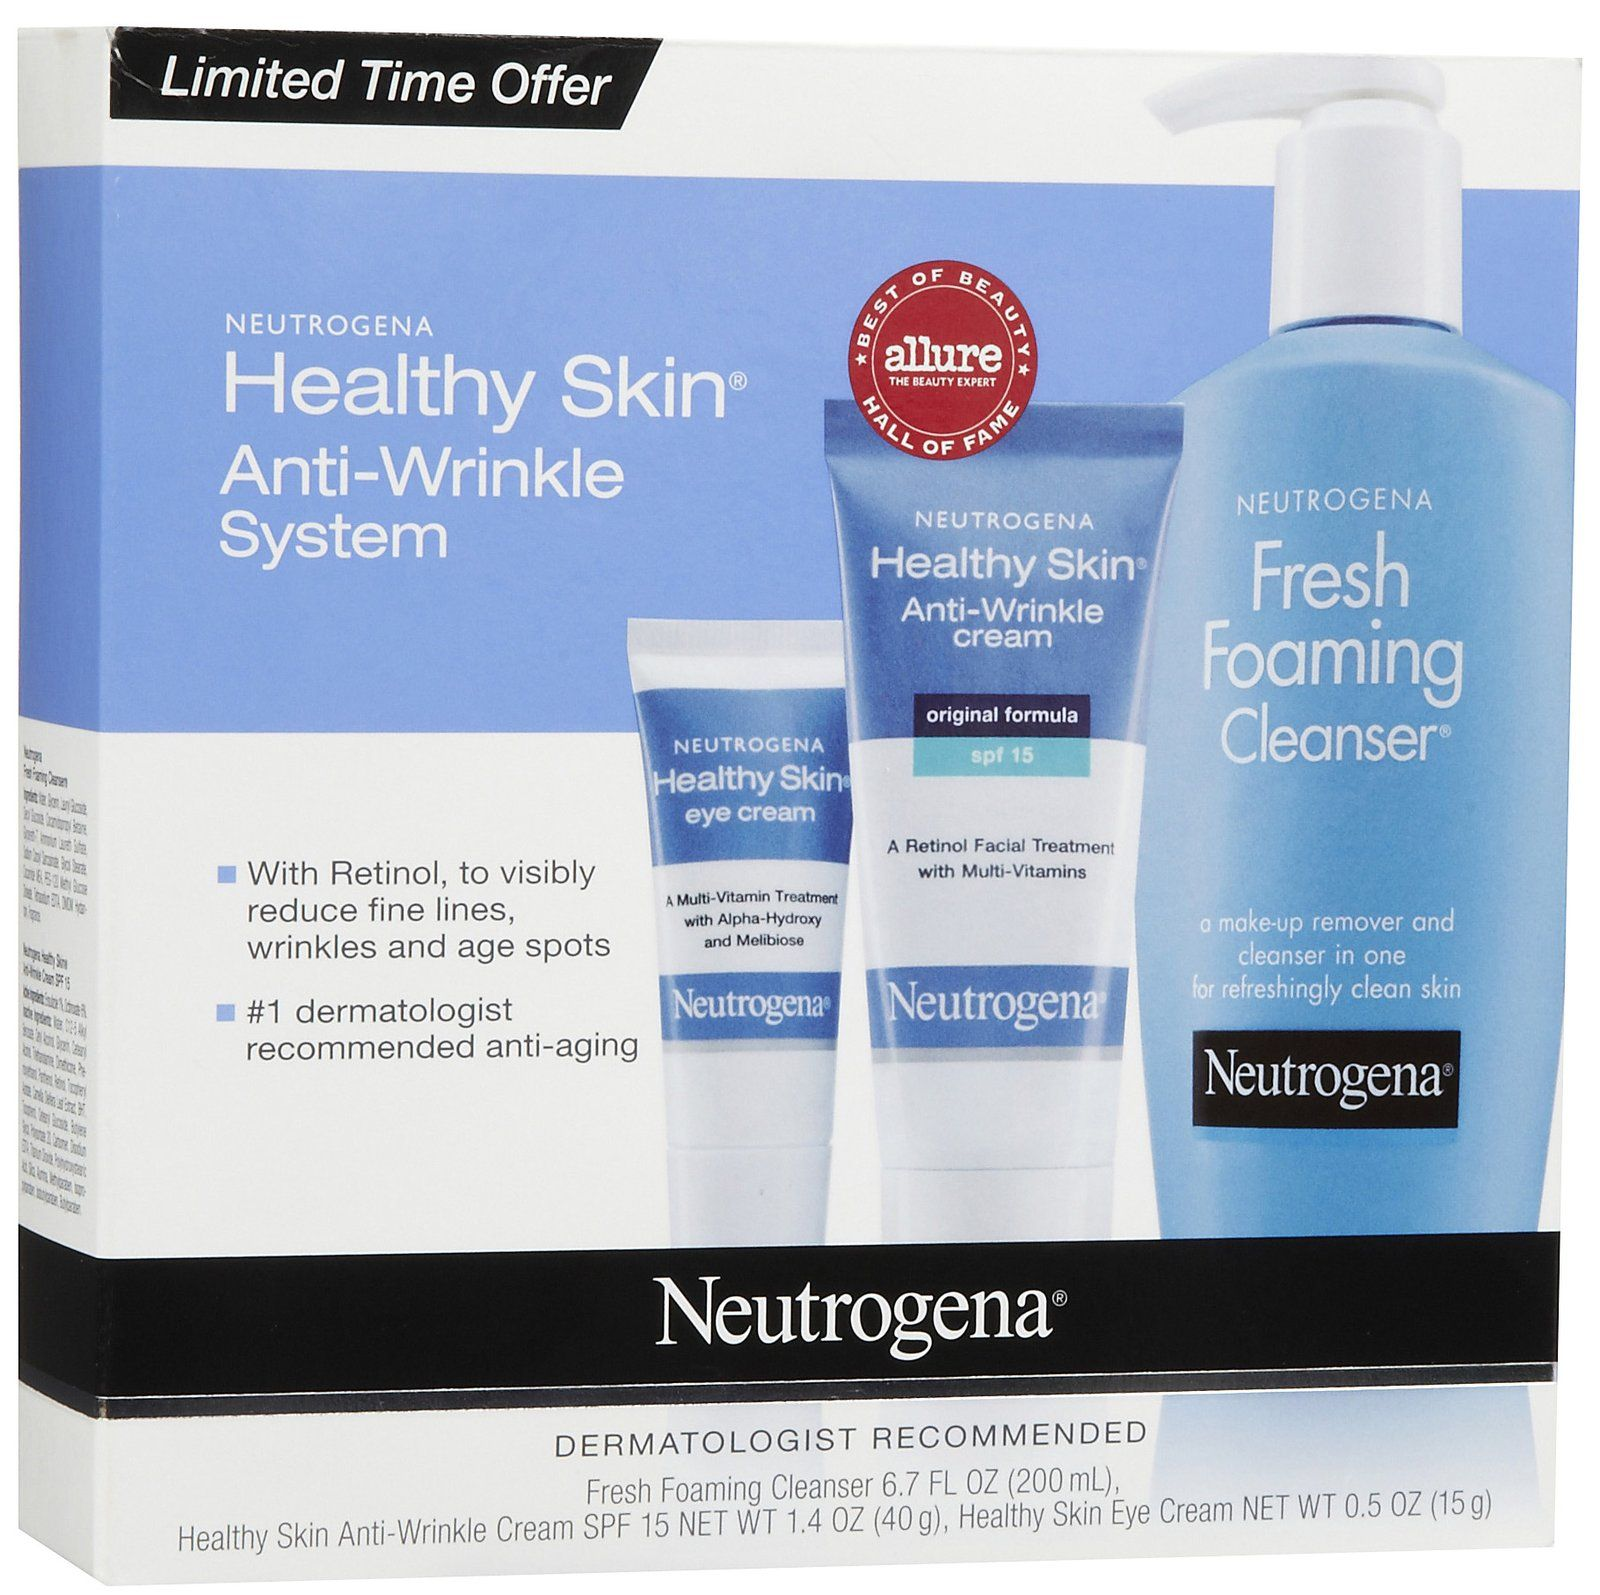 Most Of The Neutrogena Products Are Effective And They Have